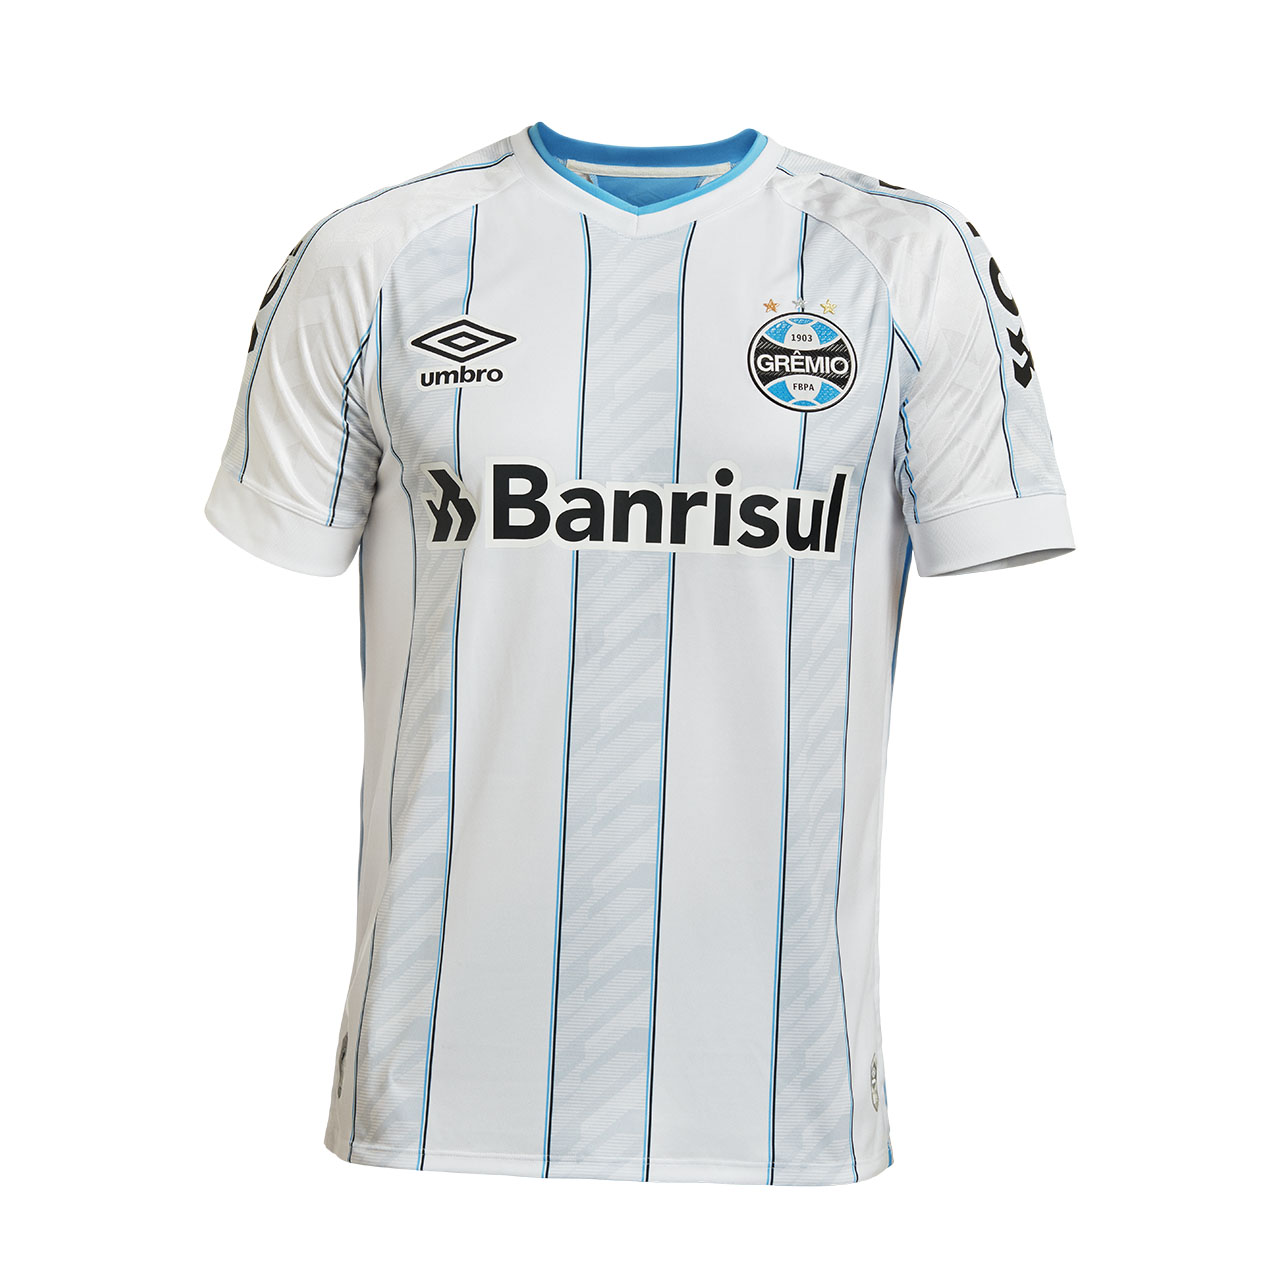 https://assets-mantosdofutebol.sfo2.digitaloceanspaces.com/wp-content/uploads/2020/03/Camisas-do-Gr%C3%AAmio-2020-2021-Umbro-kit-4.jpg